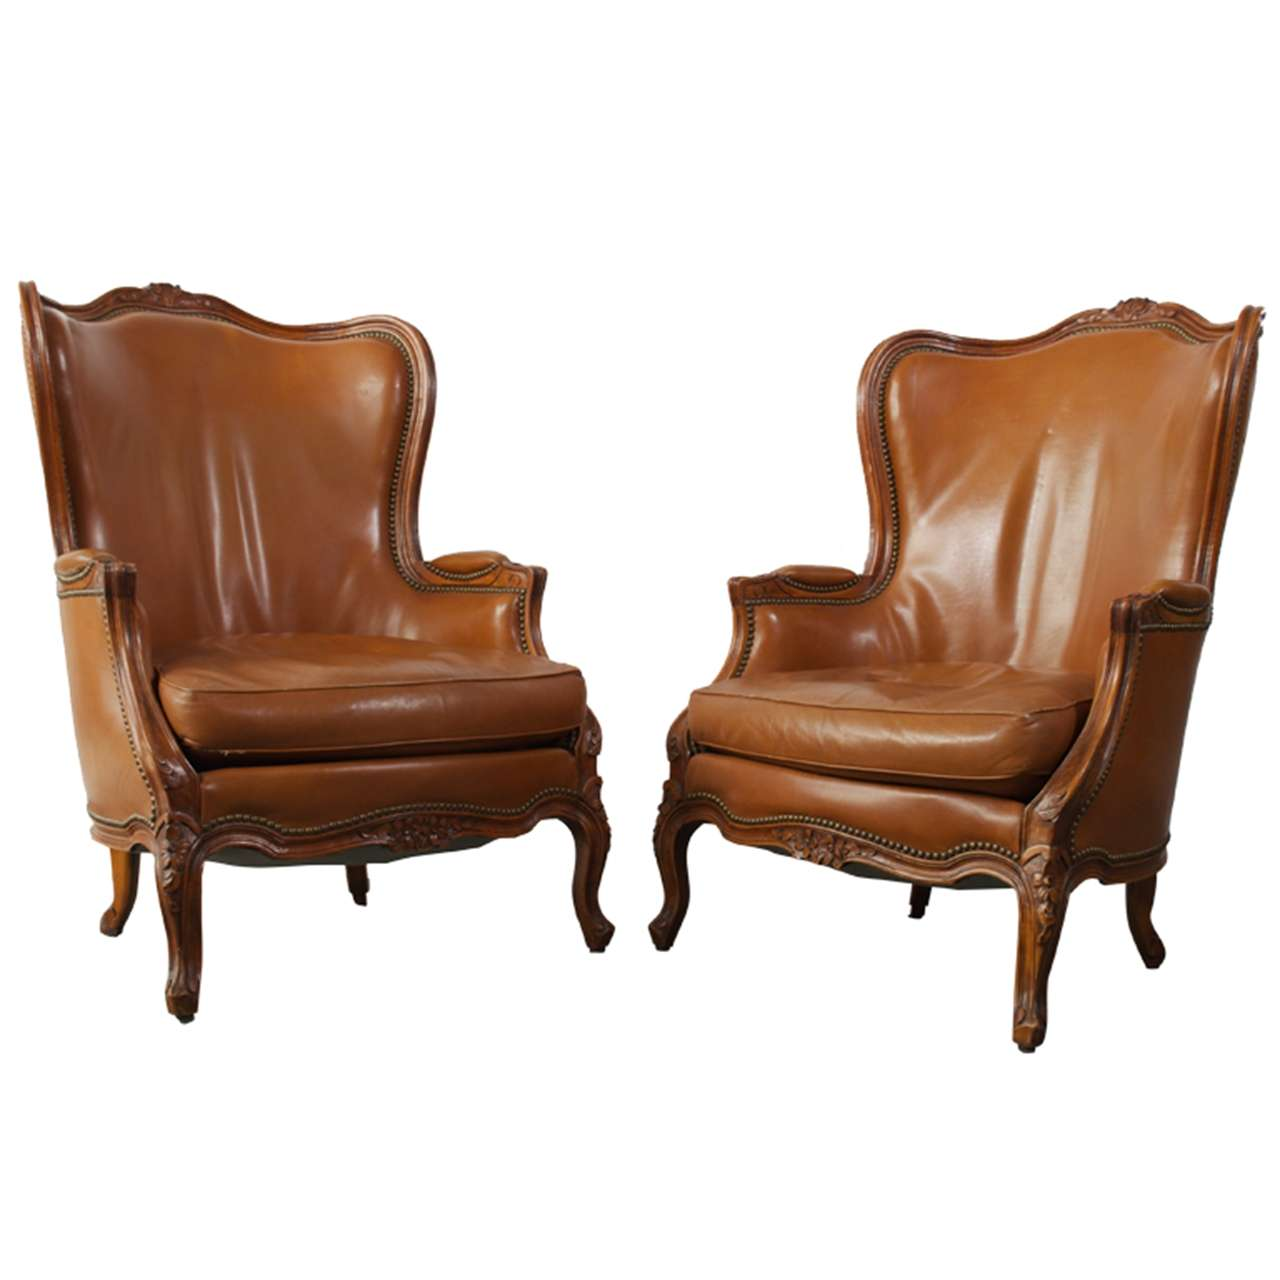 bergere chairs dining room only louis 15th style at 1stdibs